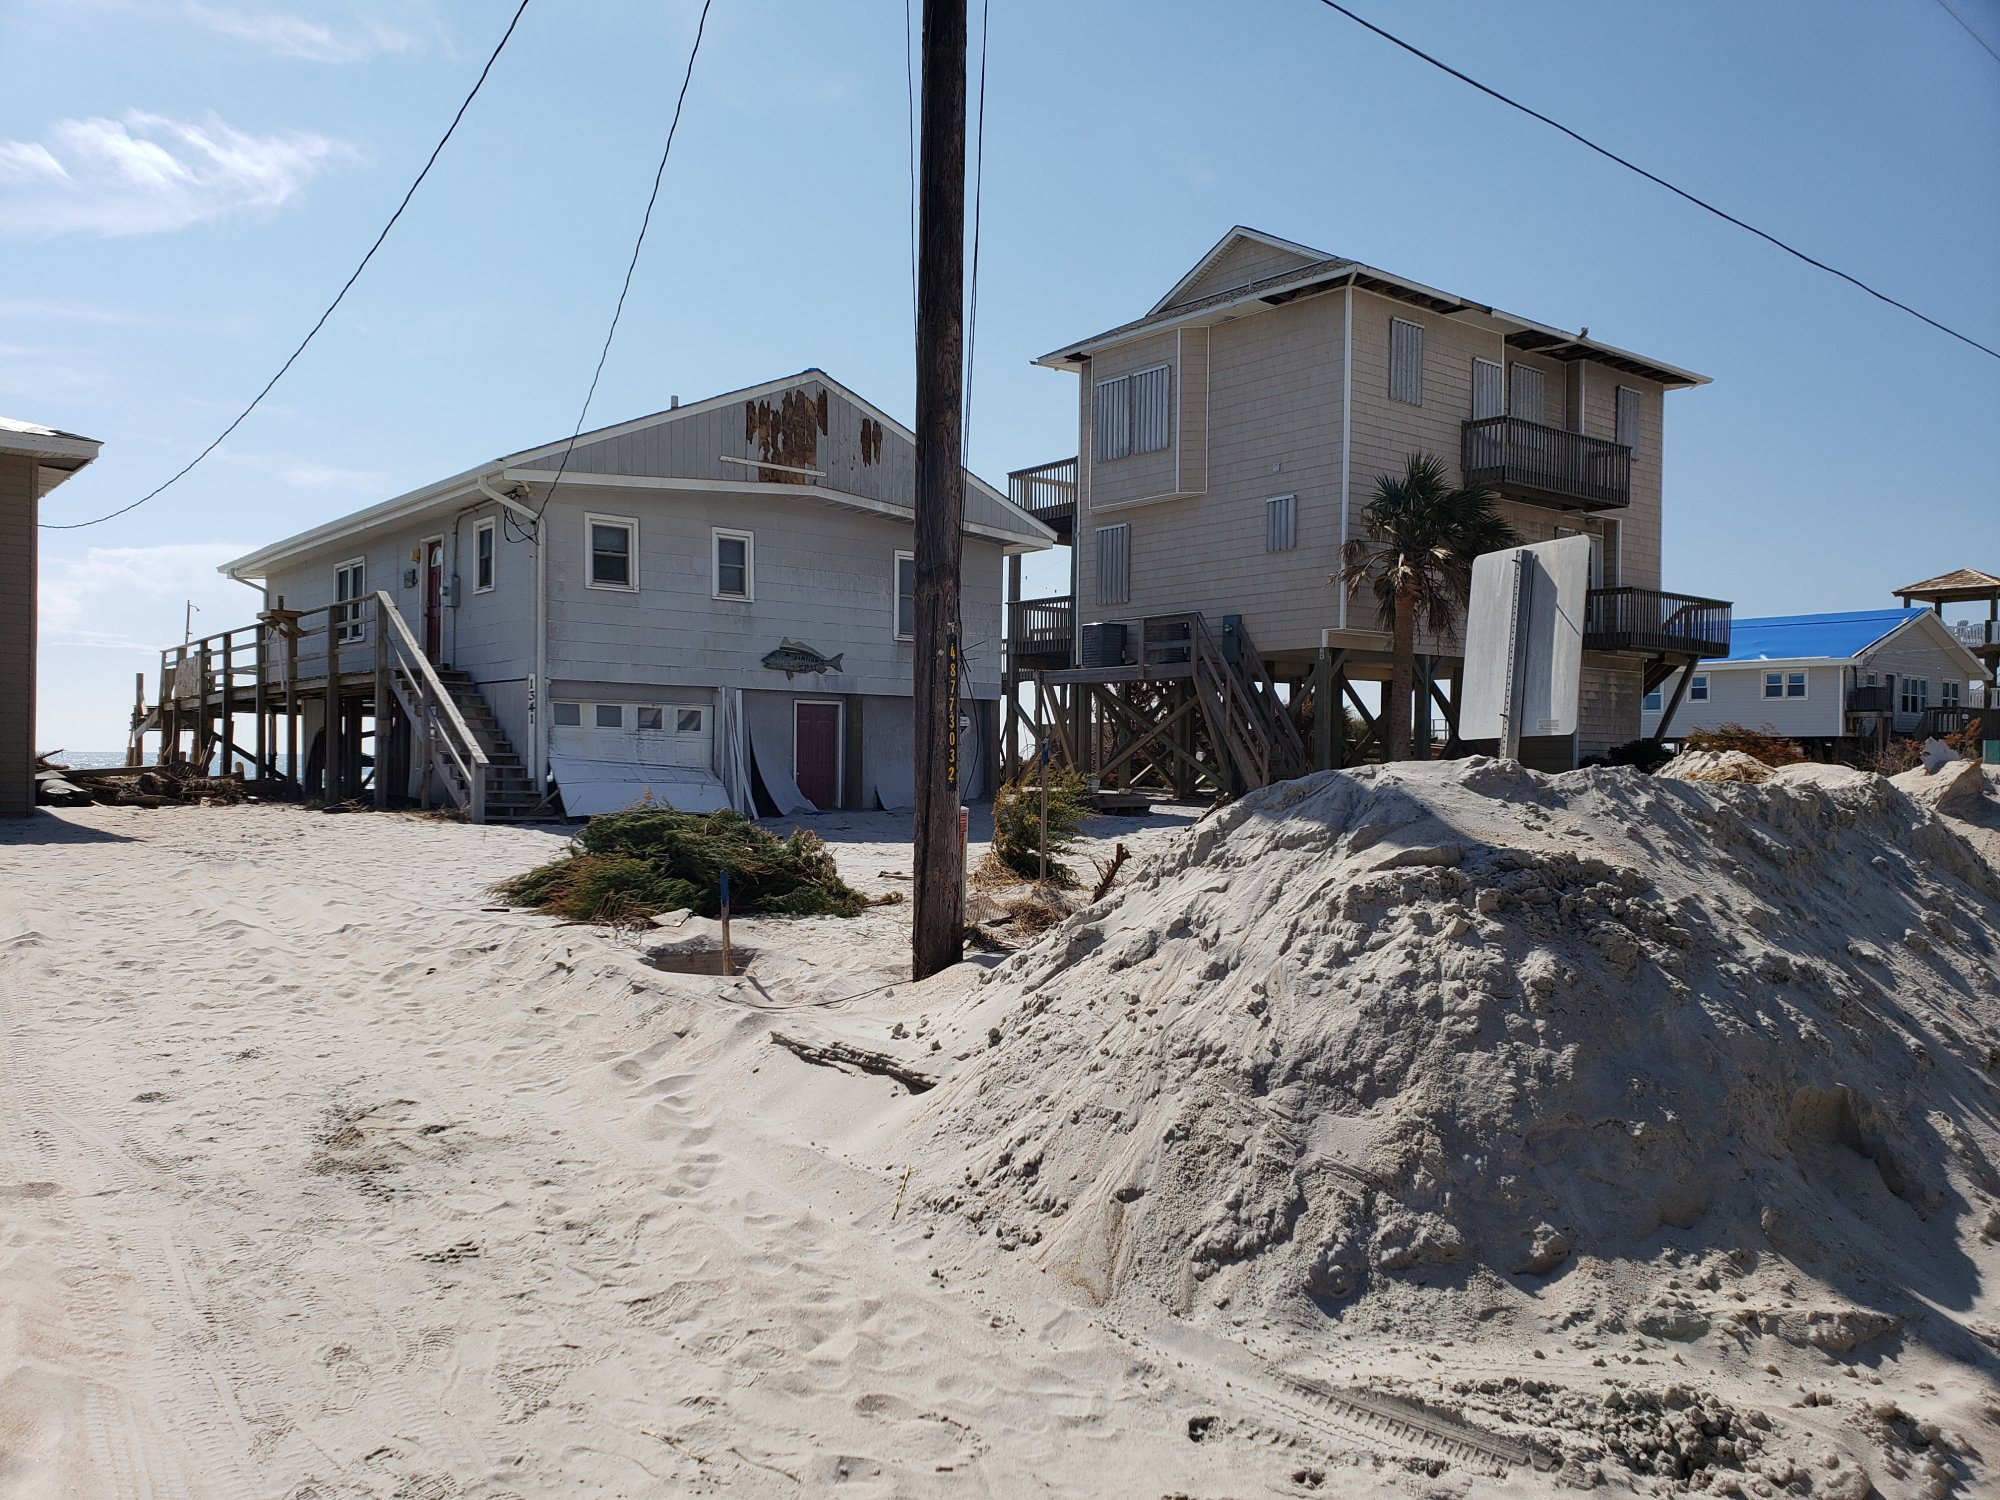 Florence's storm surge covered roads in sand, while the wind damaged siding and roofs. (Photo credit: Carl Morgan/NWS)